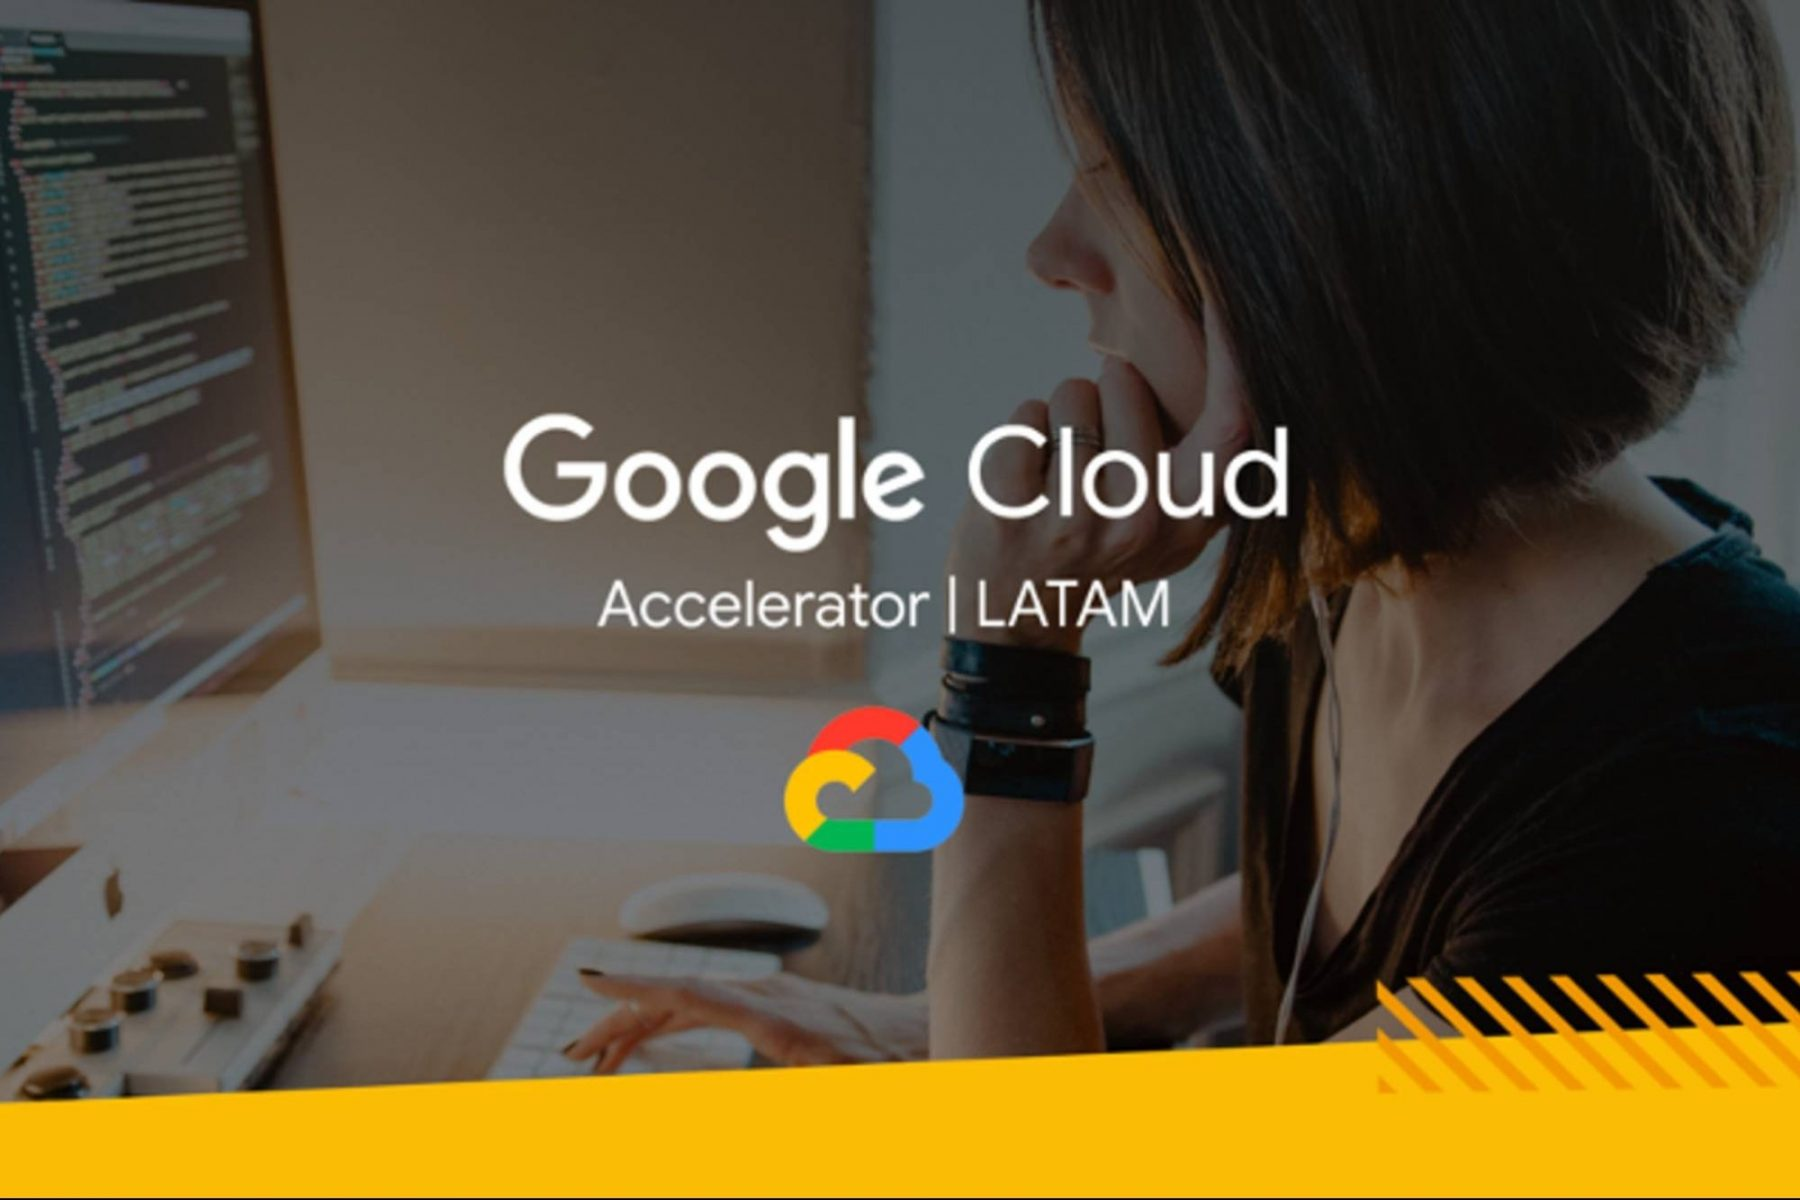 royal-company-was-chosen-by-google-to-be-in-its-cloud-accelerator-program